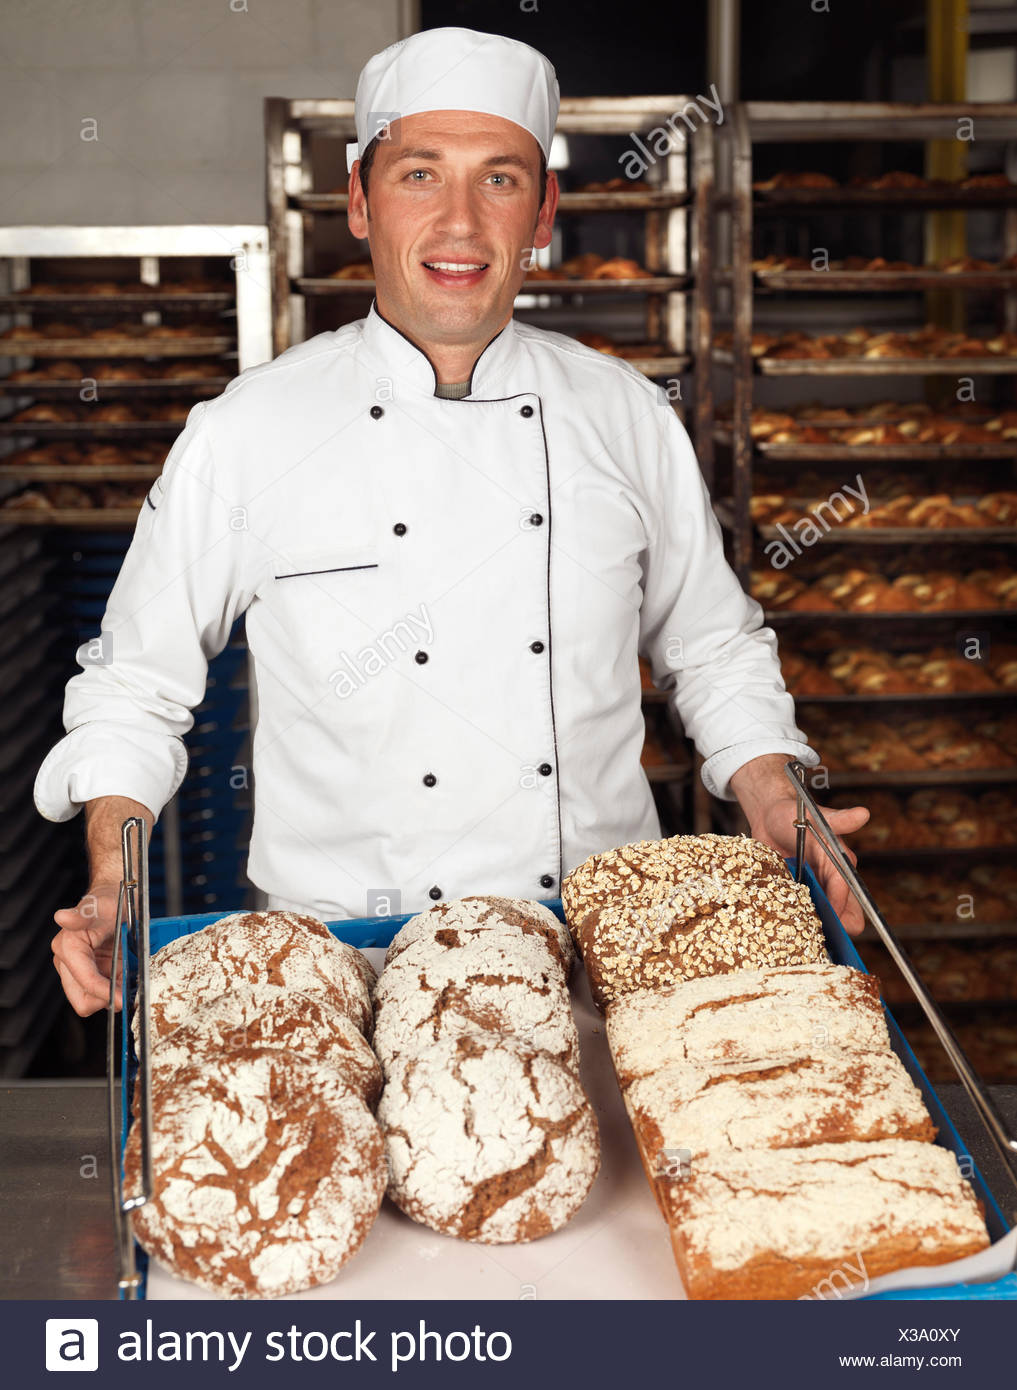 Baker holding a tray with freshly baked bread loaves in a bakery - Stock Image